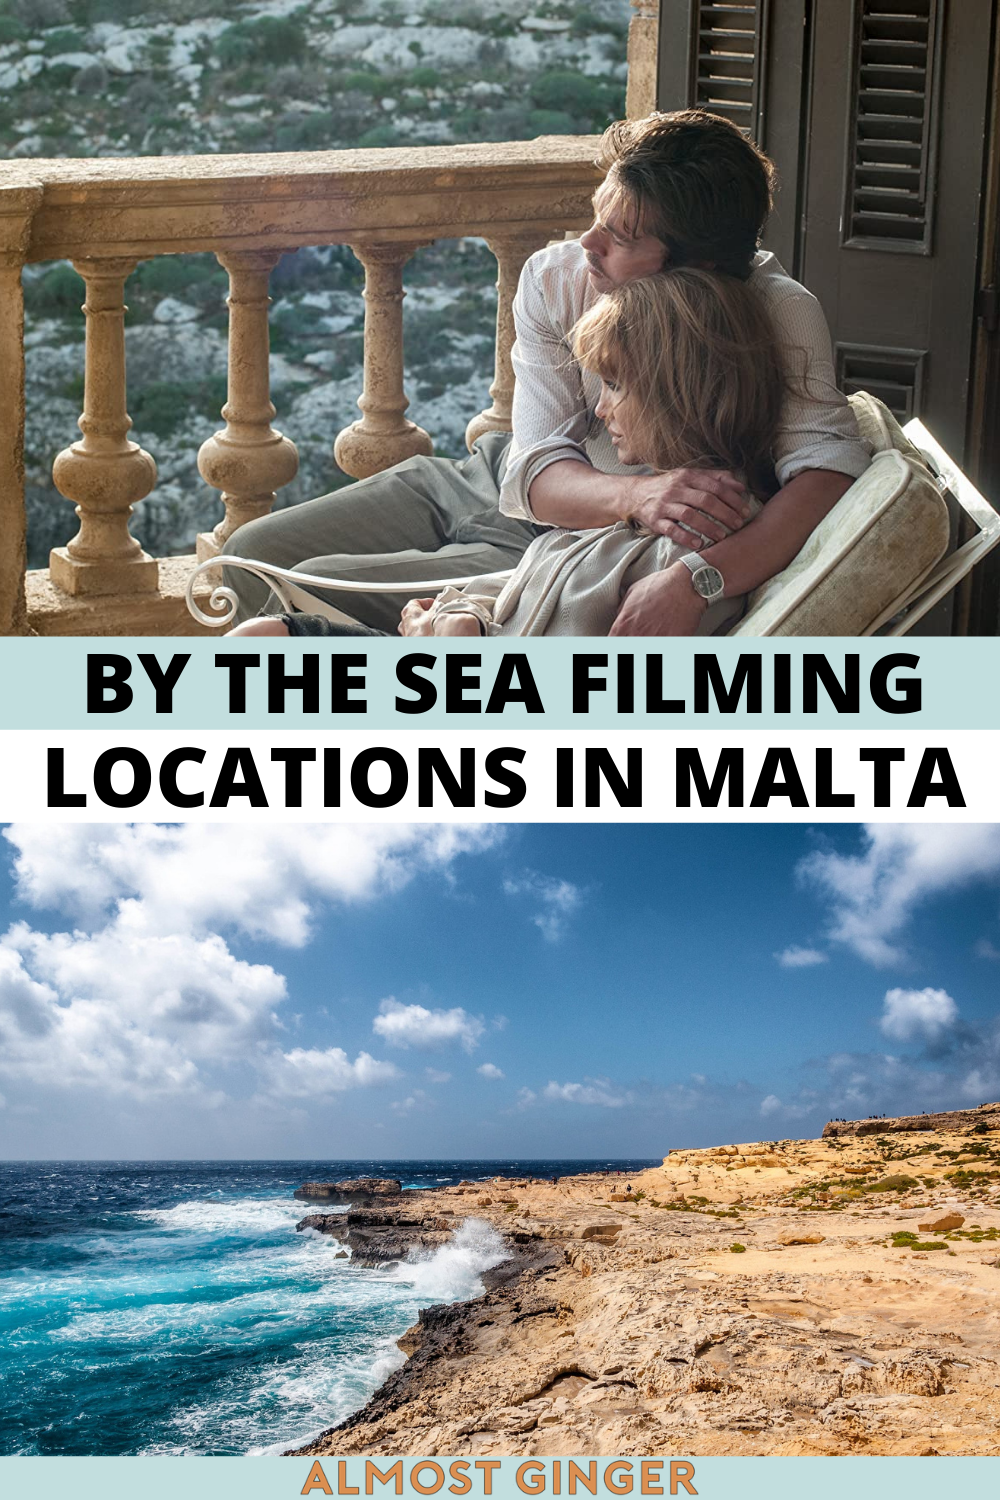 By the Sea Filming Locations in Malta